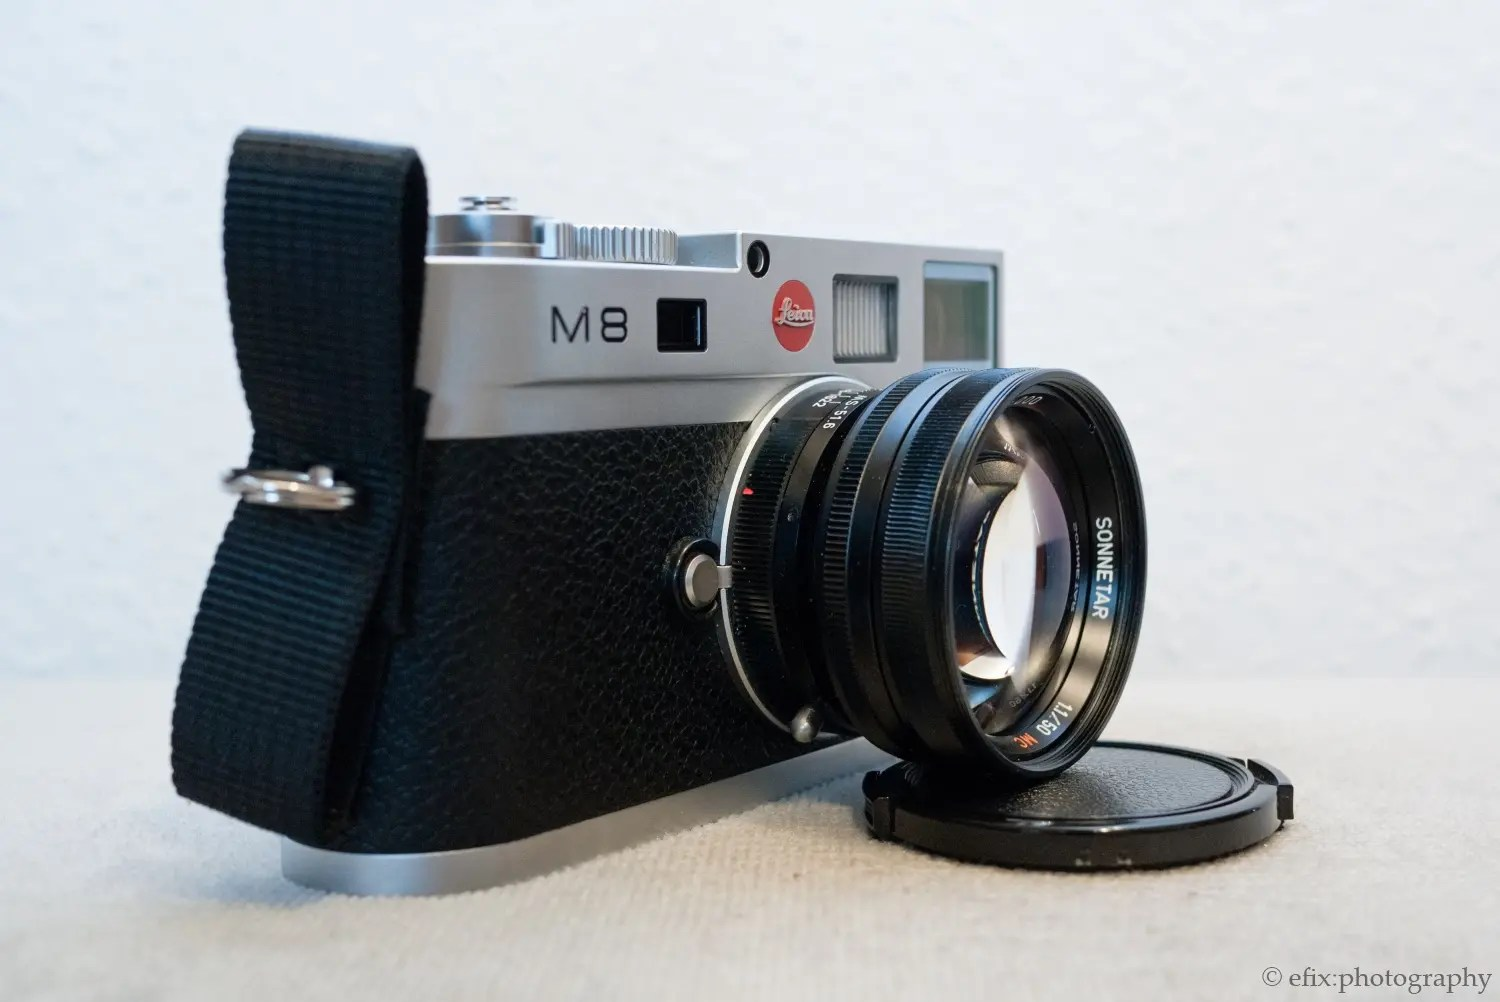 The MS-Optical Sonnetar 50/1.1 on the Leica M8. The lens is surprisingly small for its focal length and speed.